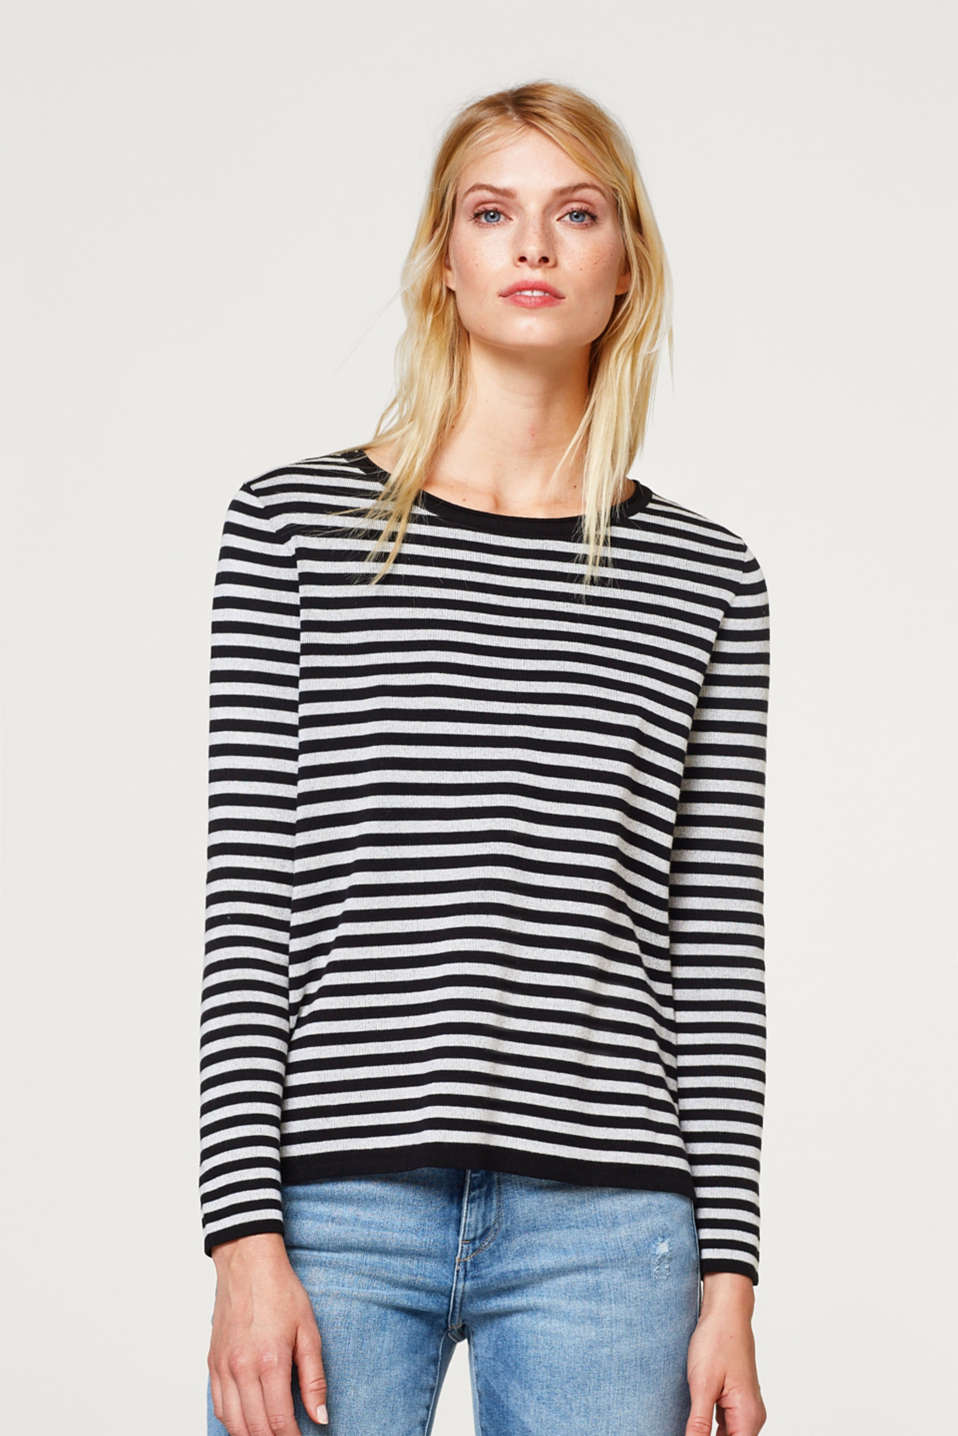 Esprit - Double-faced sweatshirt with stripes and a button placket